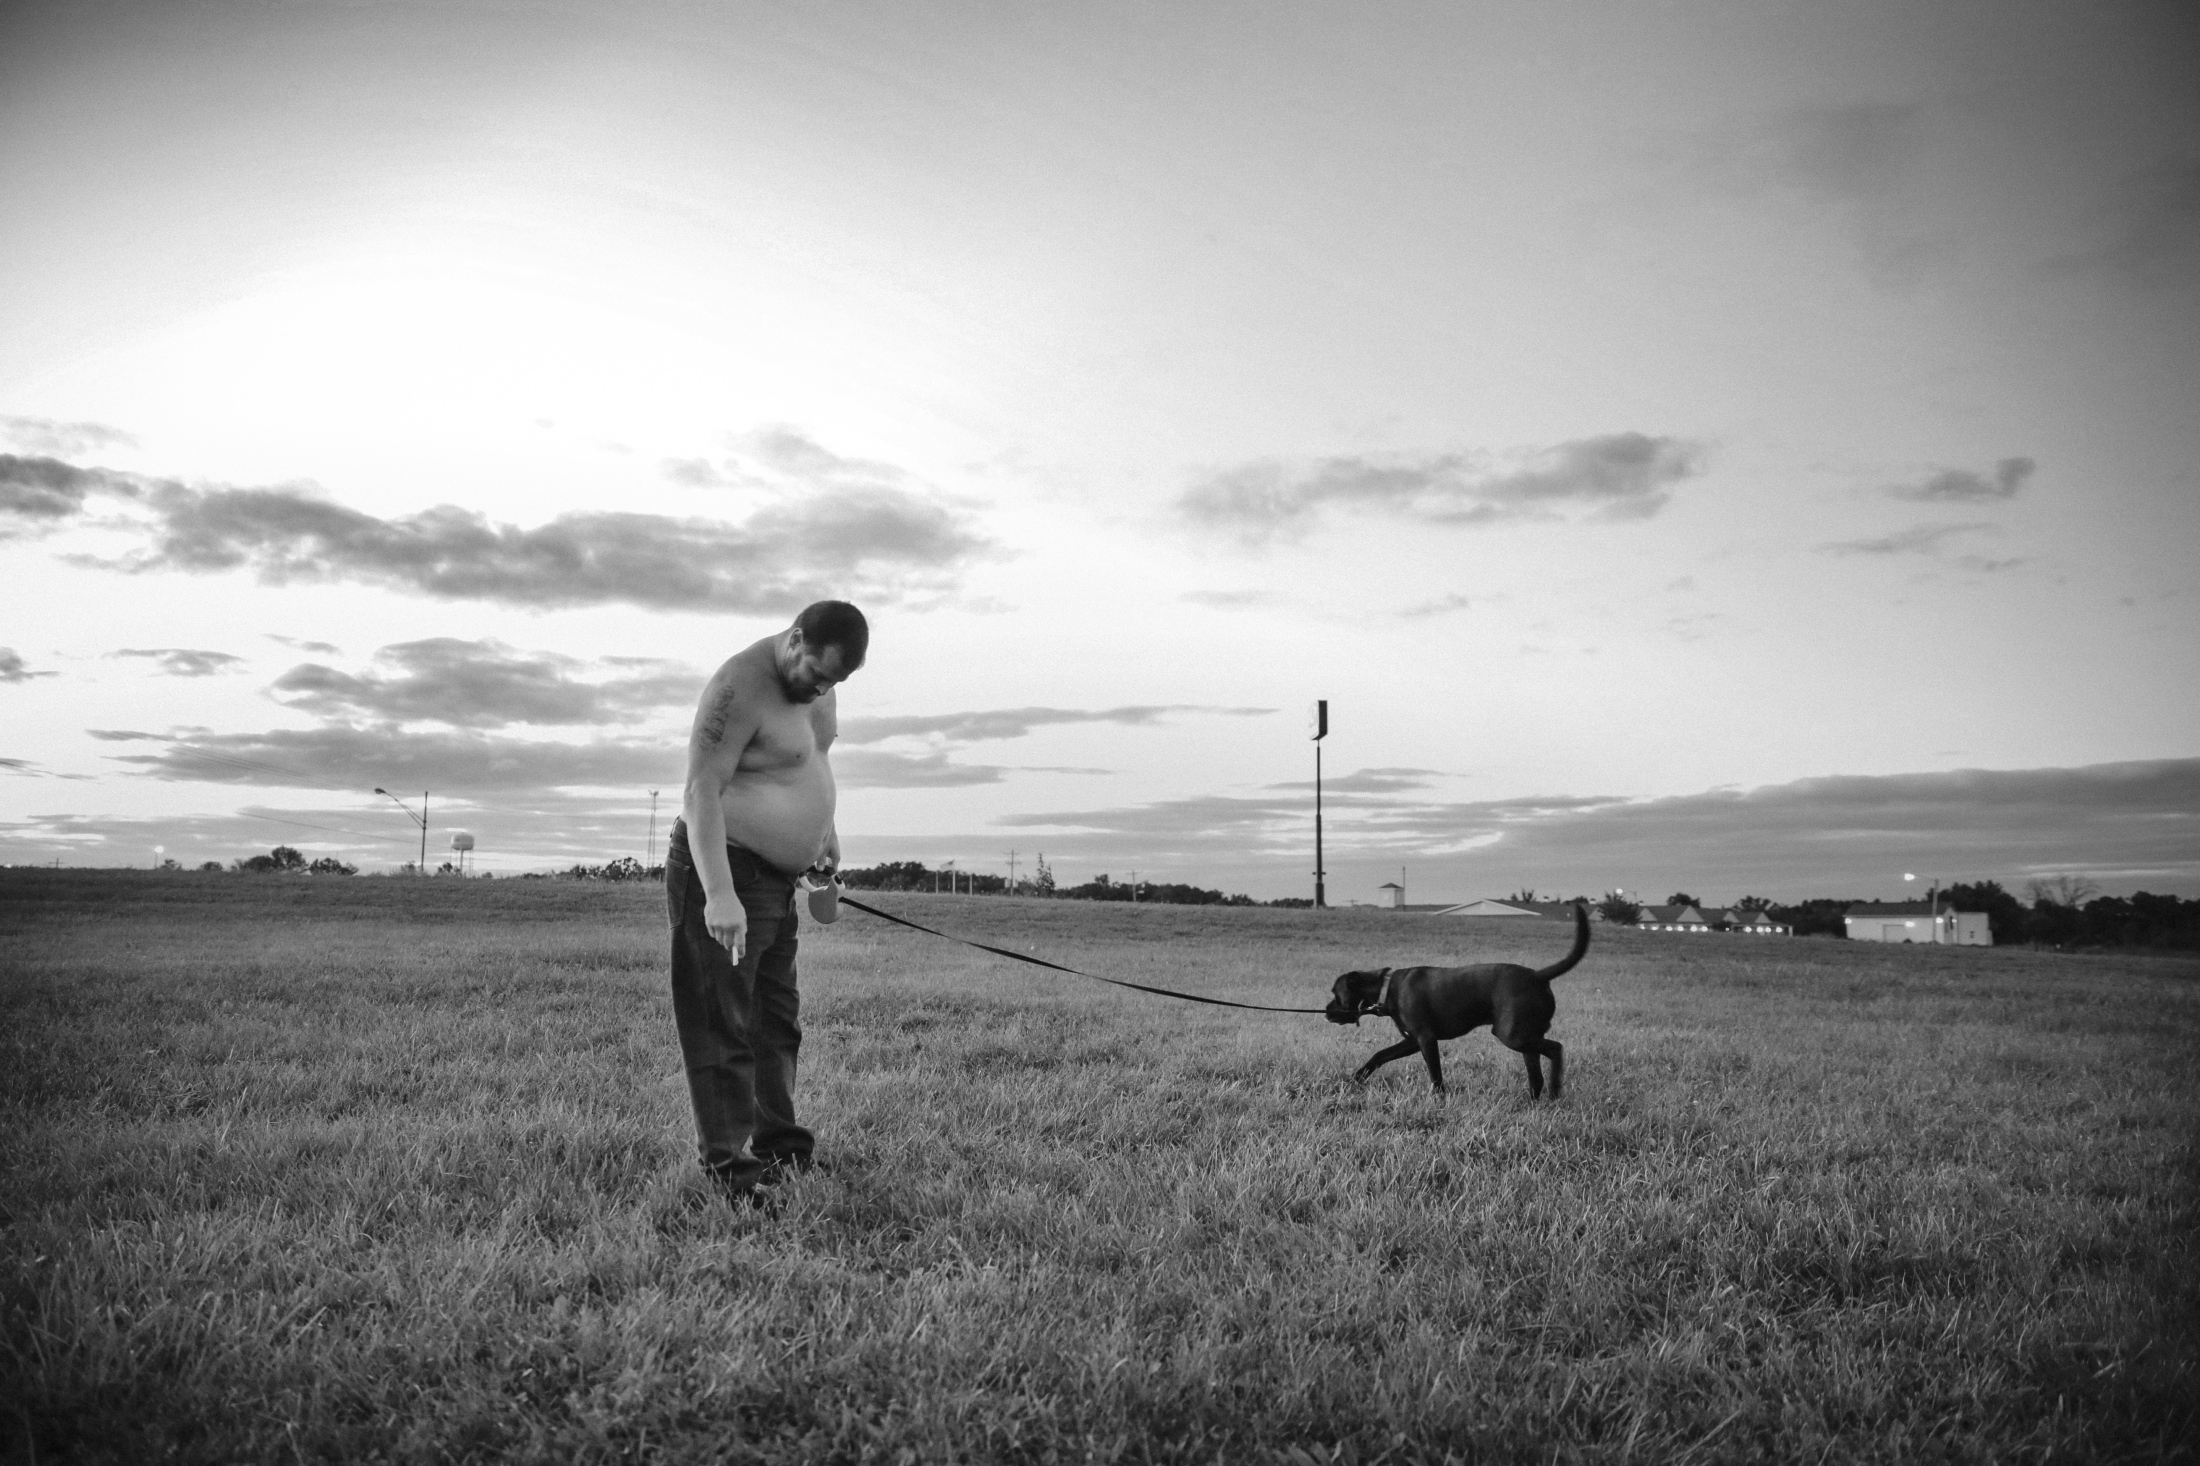 Anthony Young walks his 7-year-old black lab-pei dog, Sampson, near Chateau Inn & Suites in Cuba, Missouri. Since July, Young, his fiancé Dawn Klages, her father Ty Klages and Sampson have been living together in a two-bed motel room after losing the house where they had lived for the past five years.